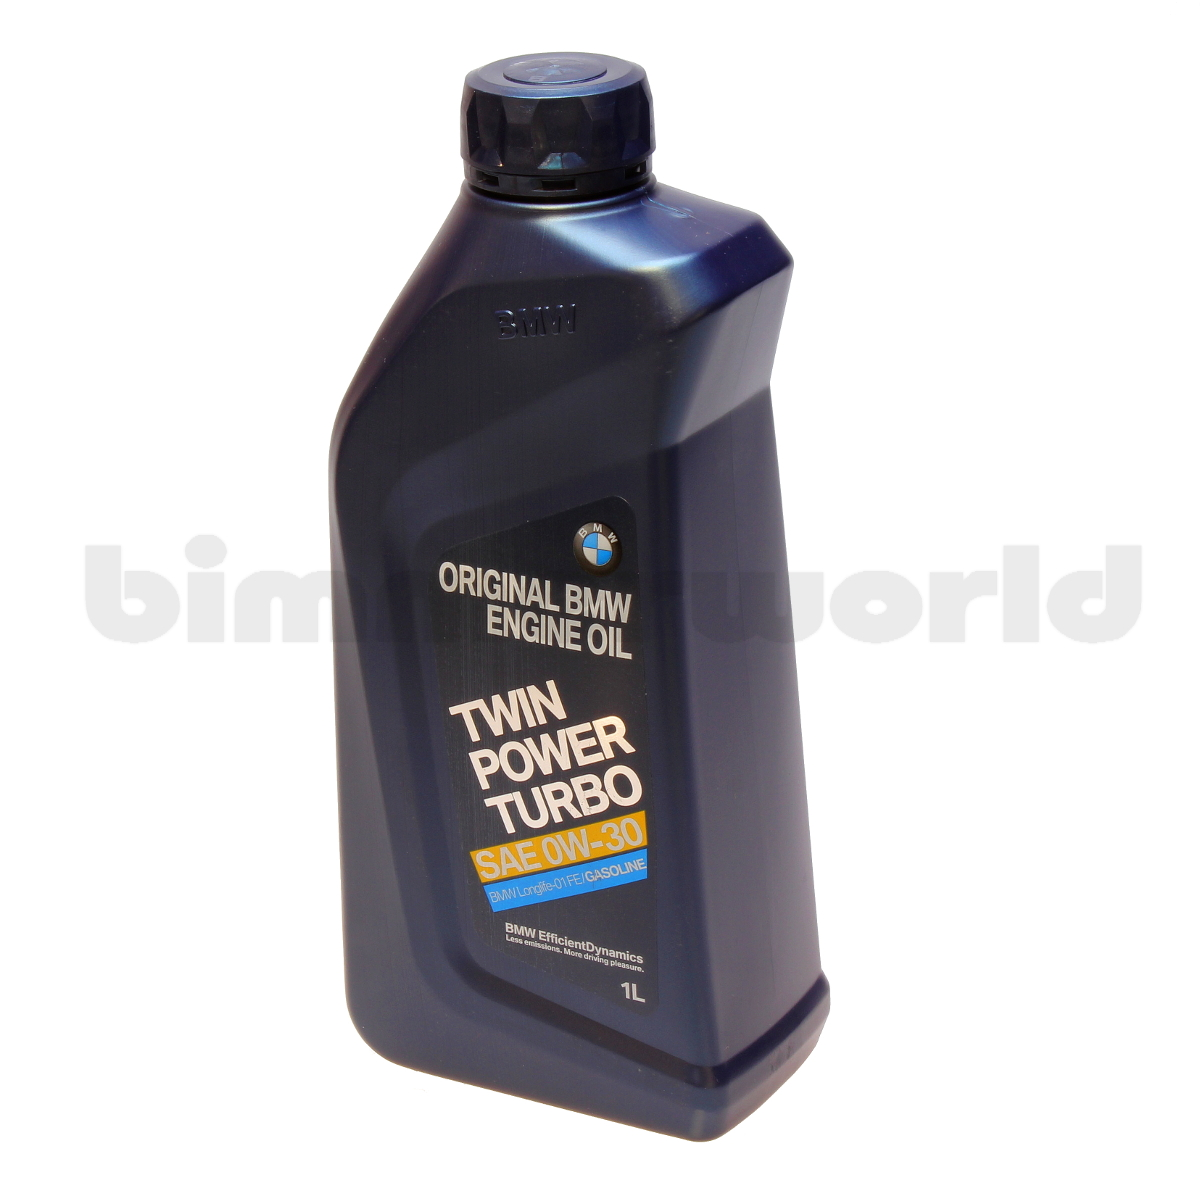 0w30 bmw twinpower turbo oil. Black Bedroom Furniture Sets. Home Design Ideas